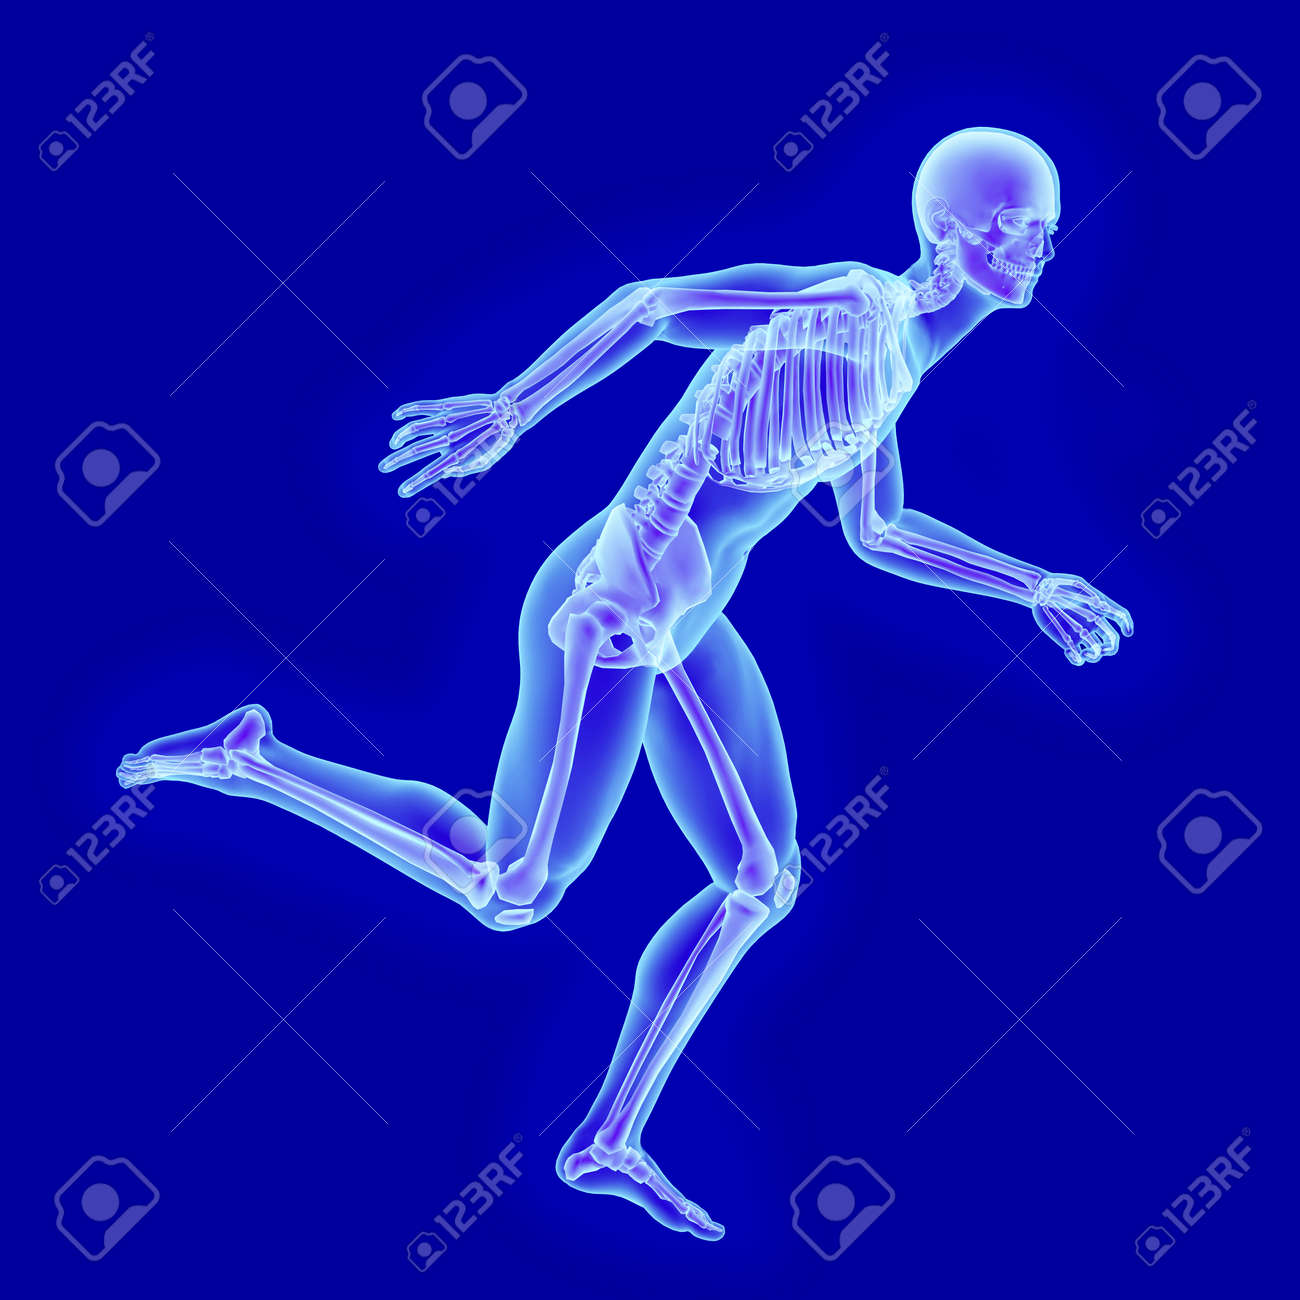 X-ray Anatomy Of A Running Man With Visible Skeleton Stock Photo ...